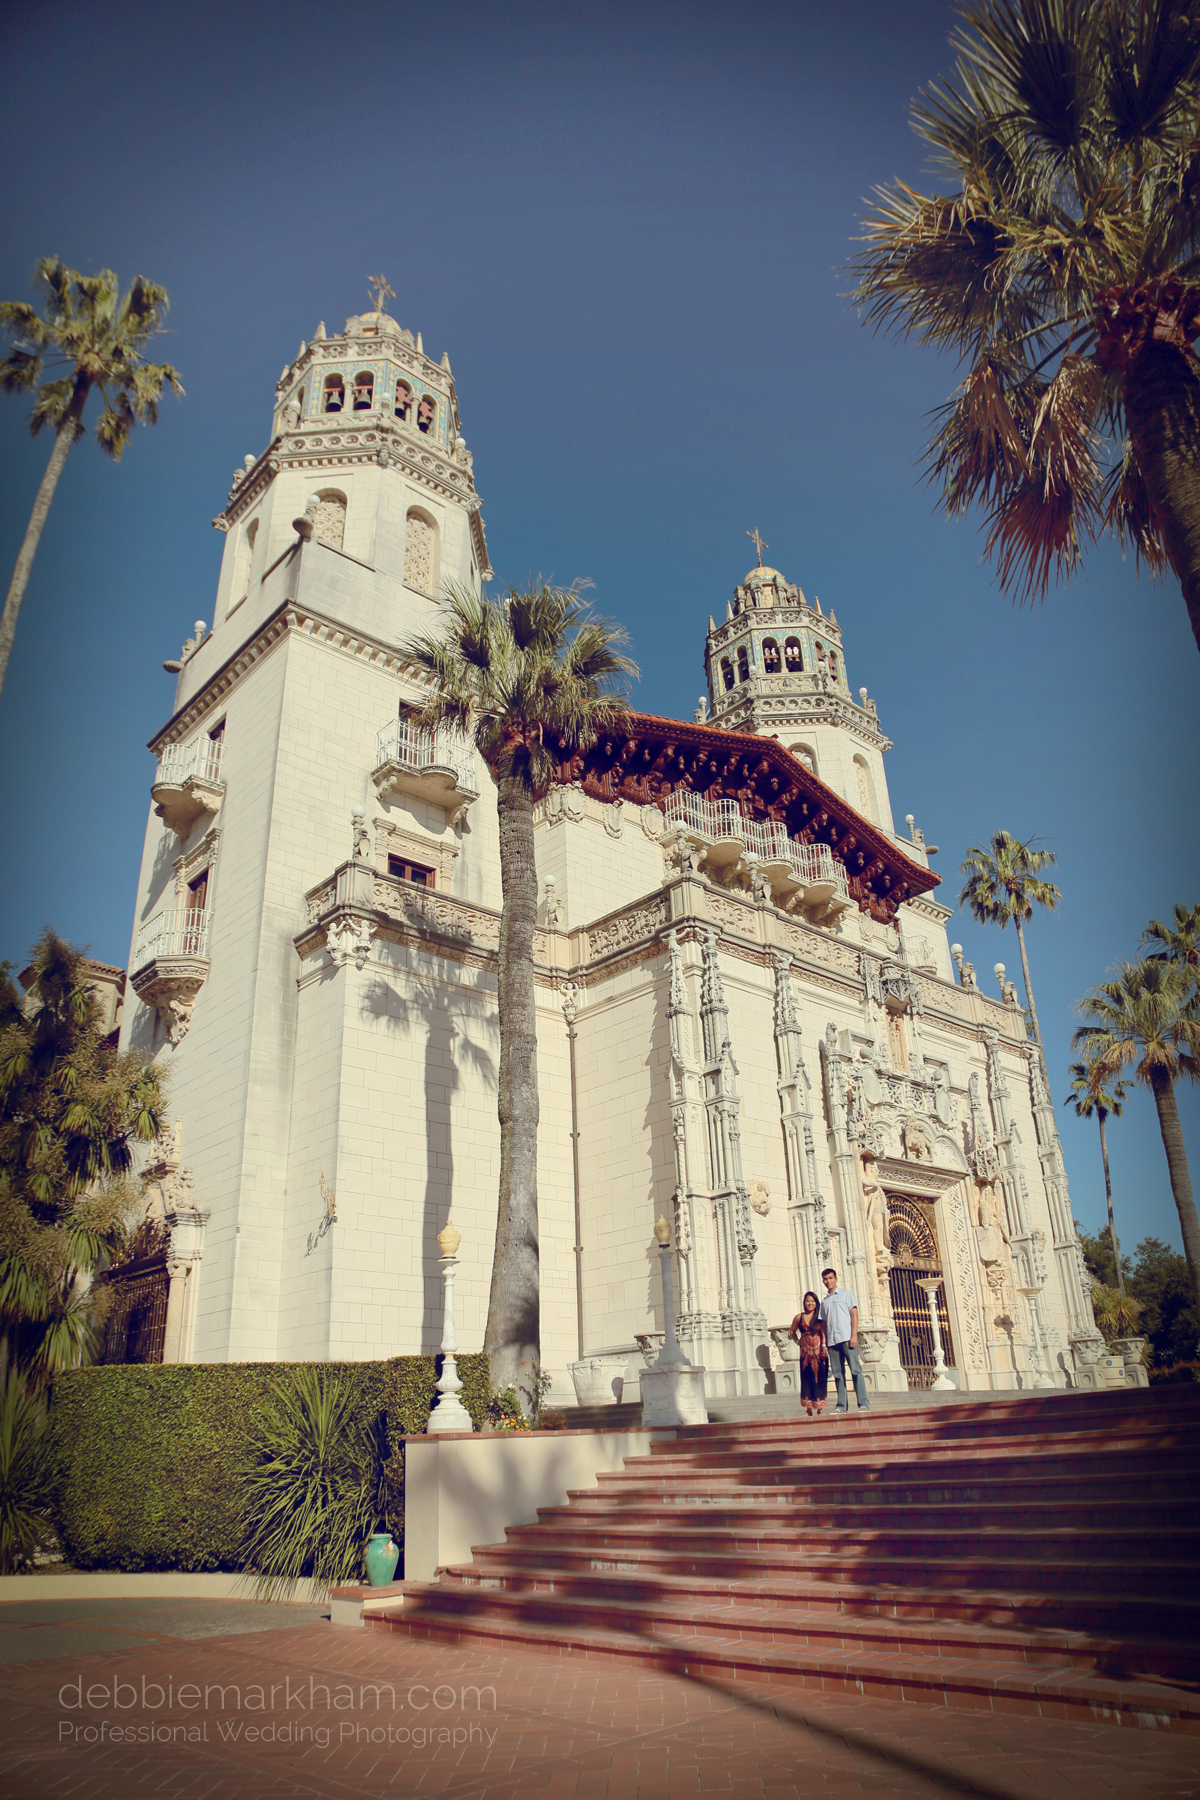 Debbie Markham Surprise Engagement Photography at Hearst Castle 319B1526retro warm